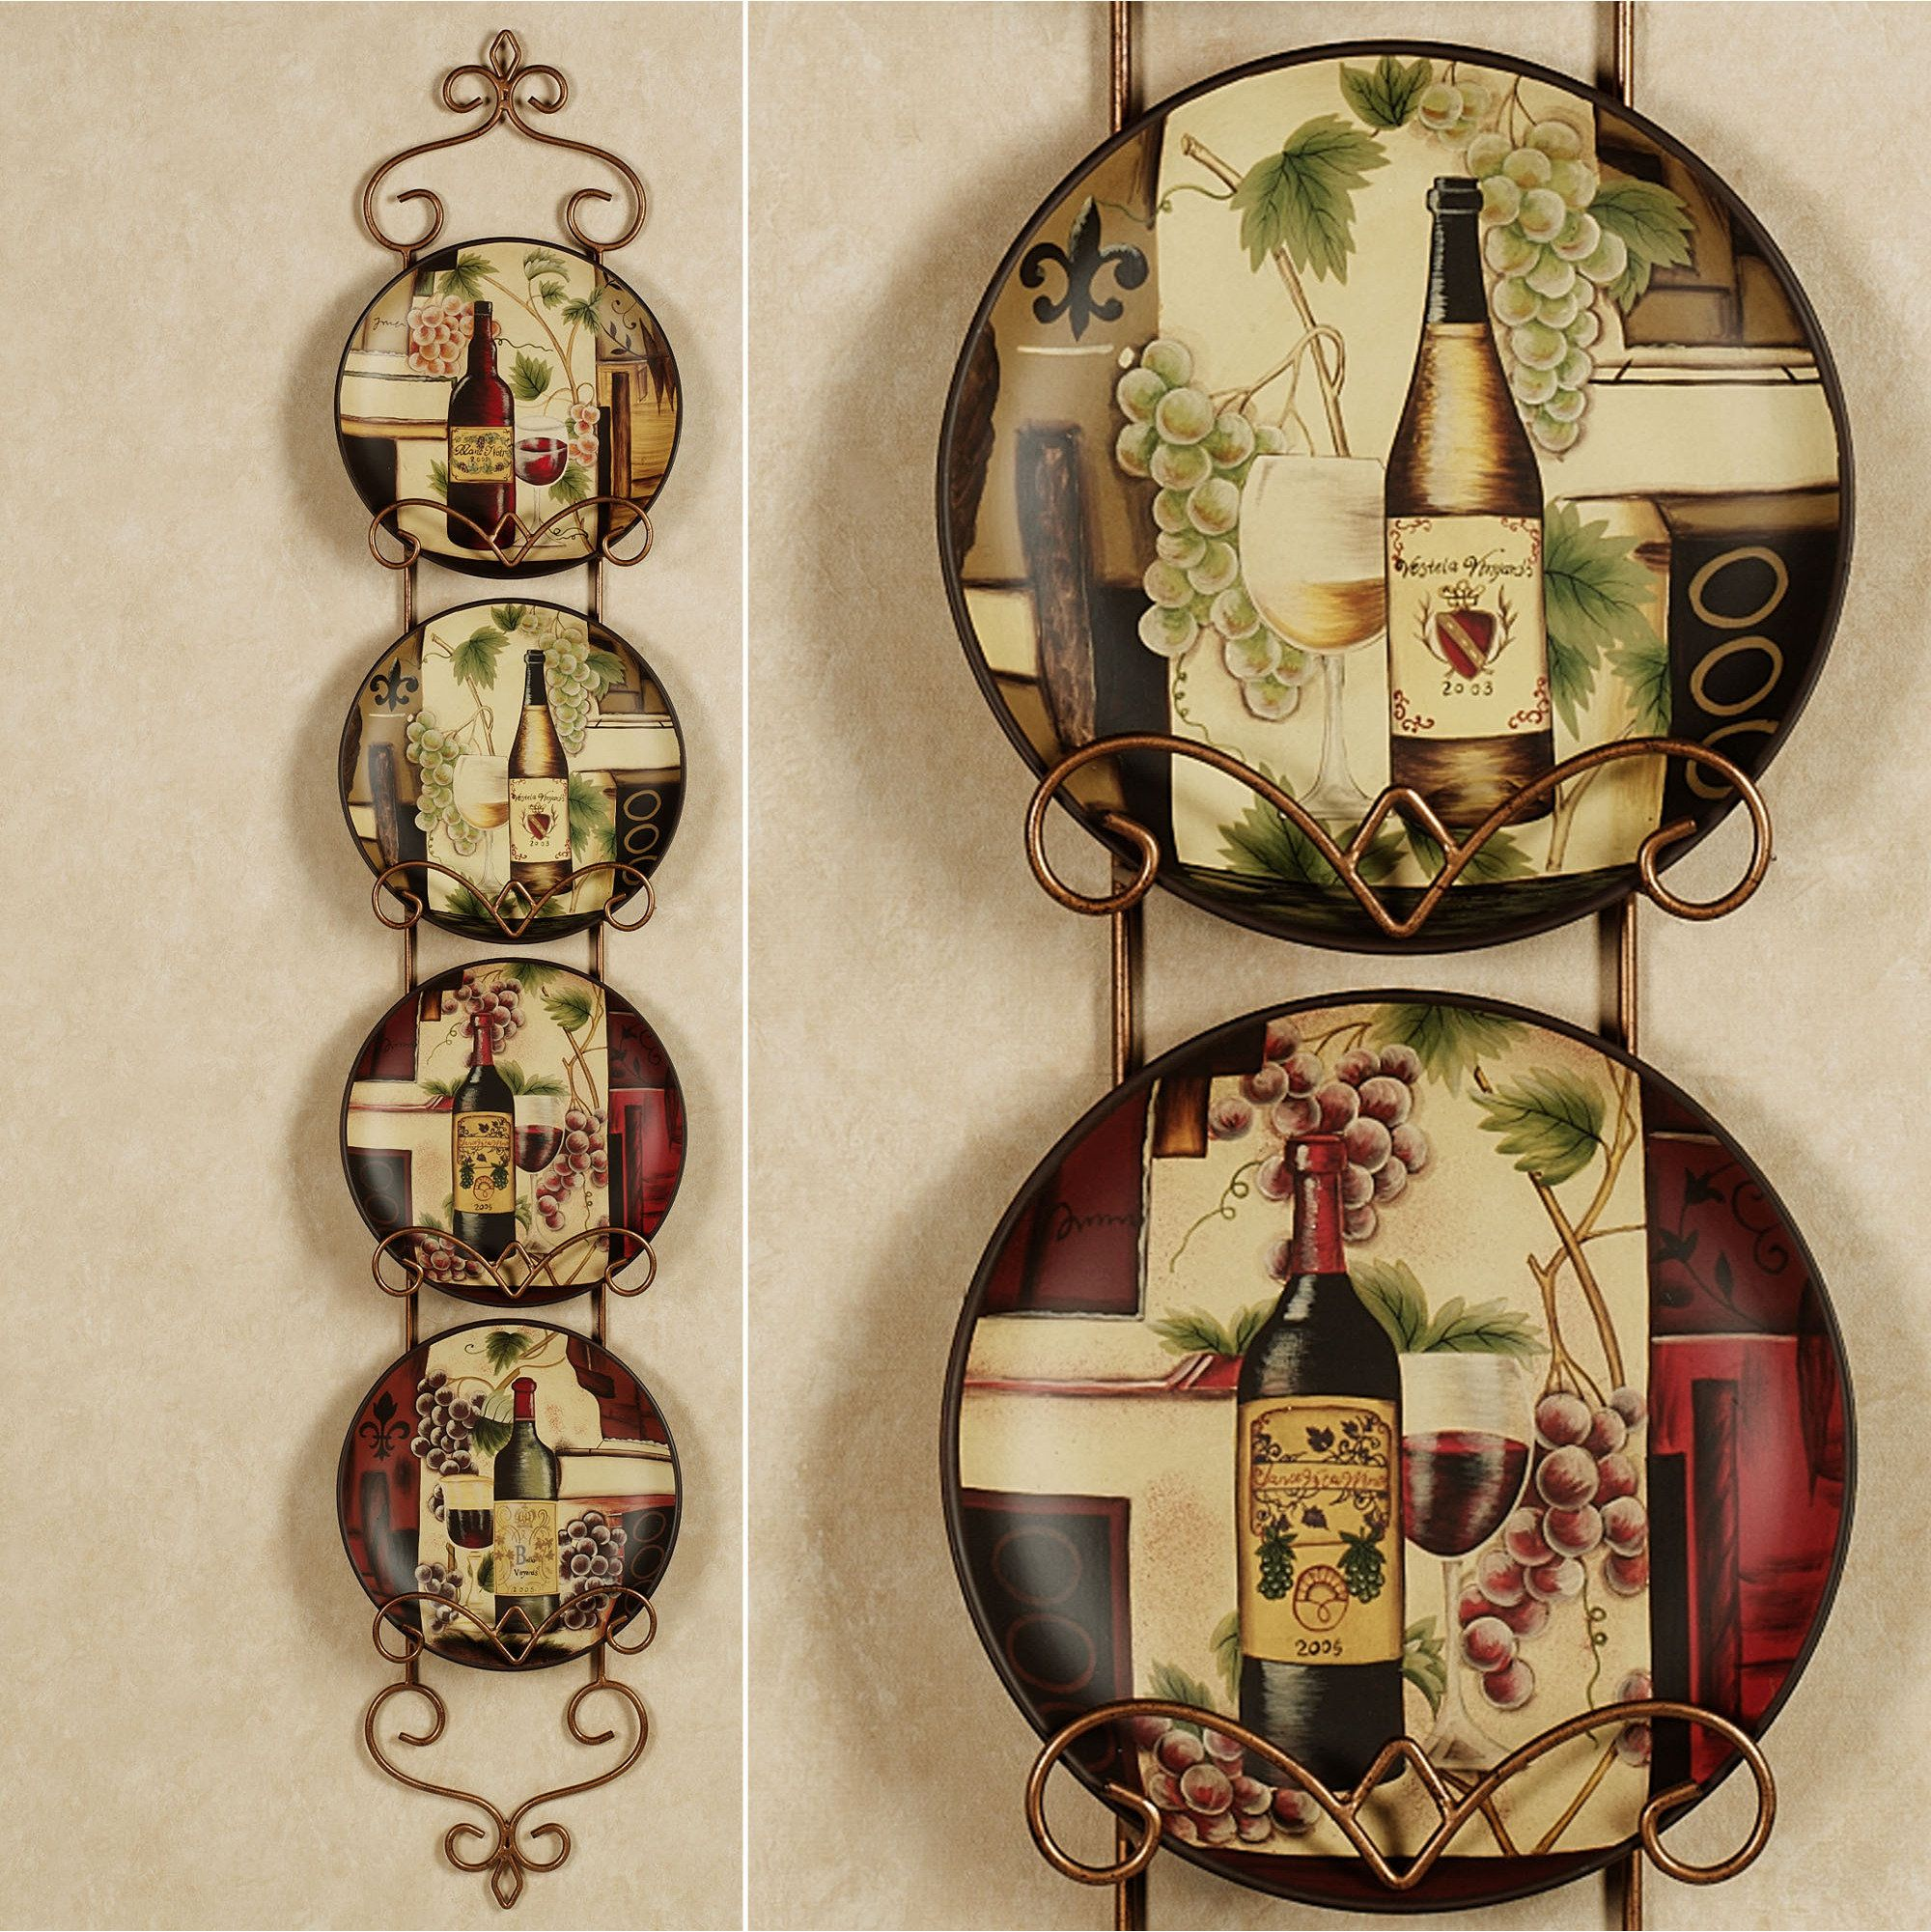 Kitchen Decorating Themes I Love Decorative Plates For The Home Pinterest Kitchens